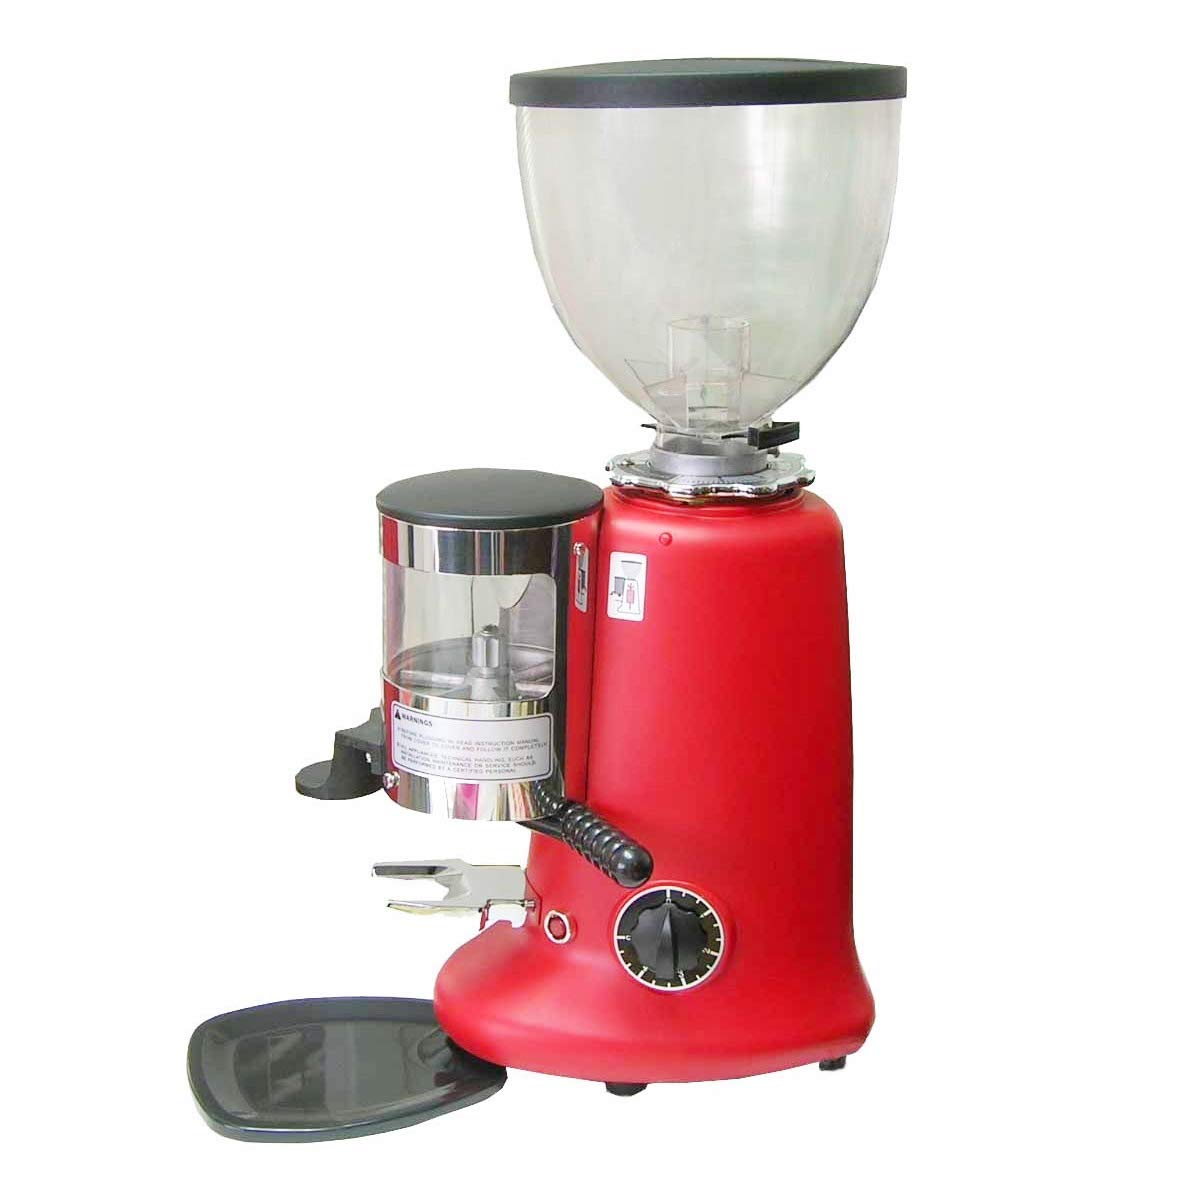 Chef Prosentials CG-11 coffee grinder Espresso commercial coffee bean grinding machine for cafe (220V)